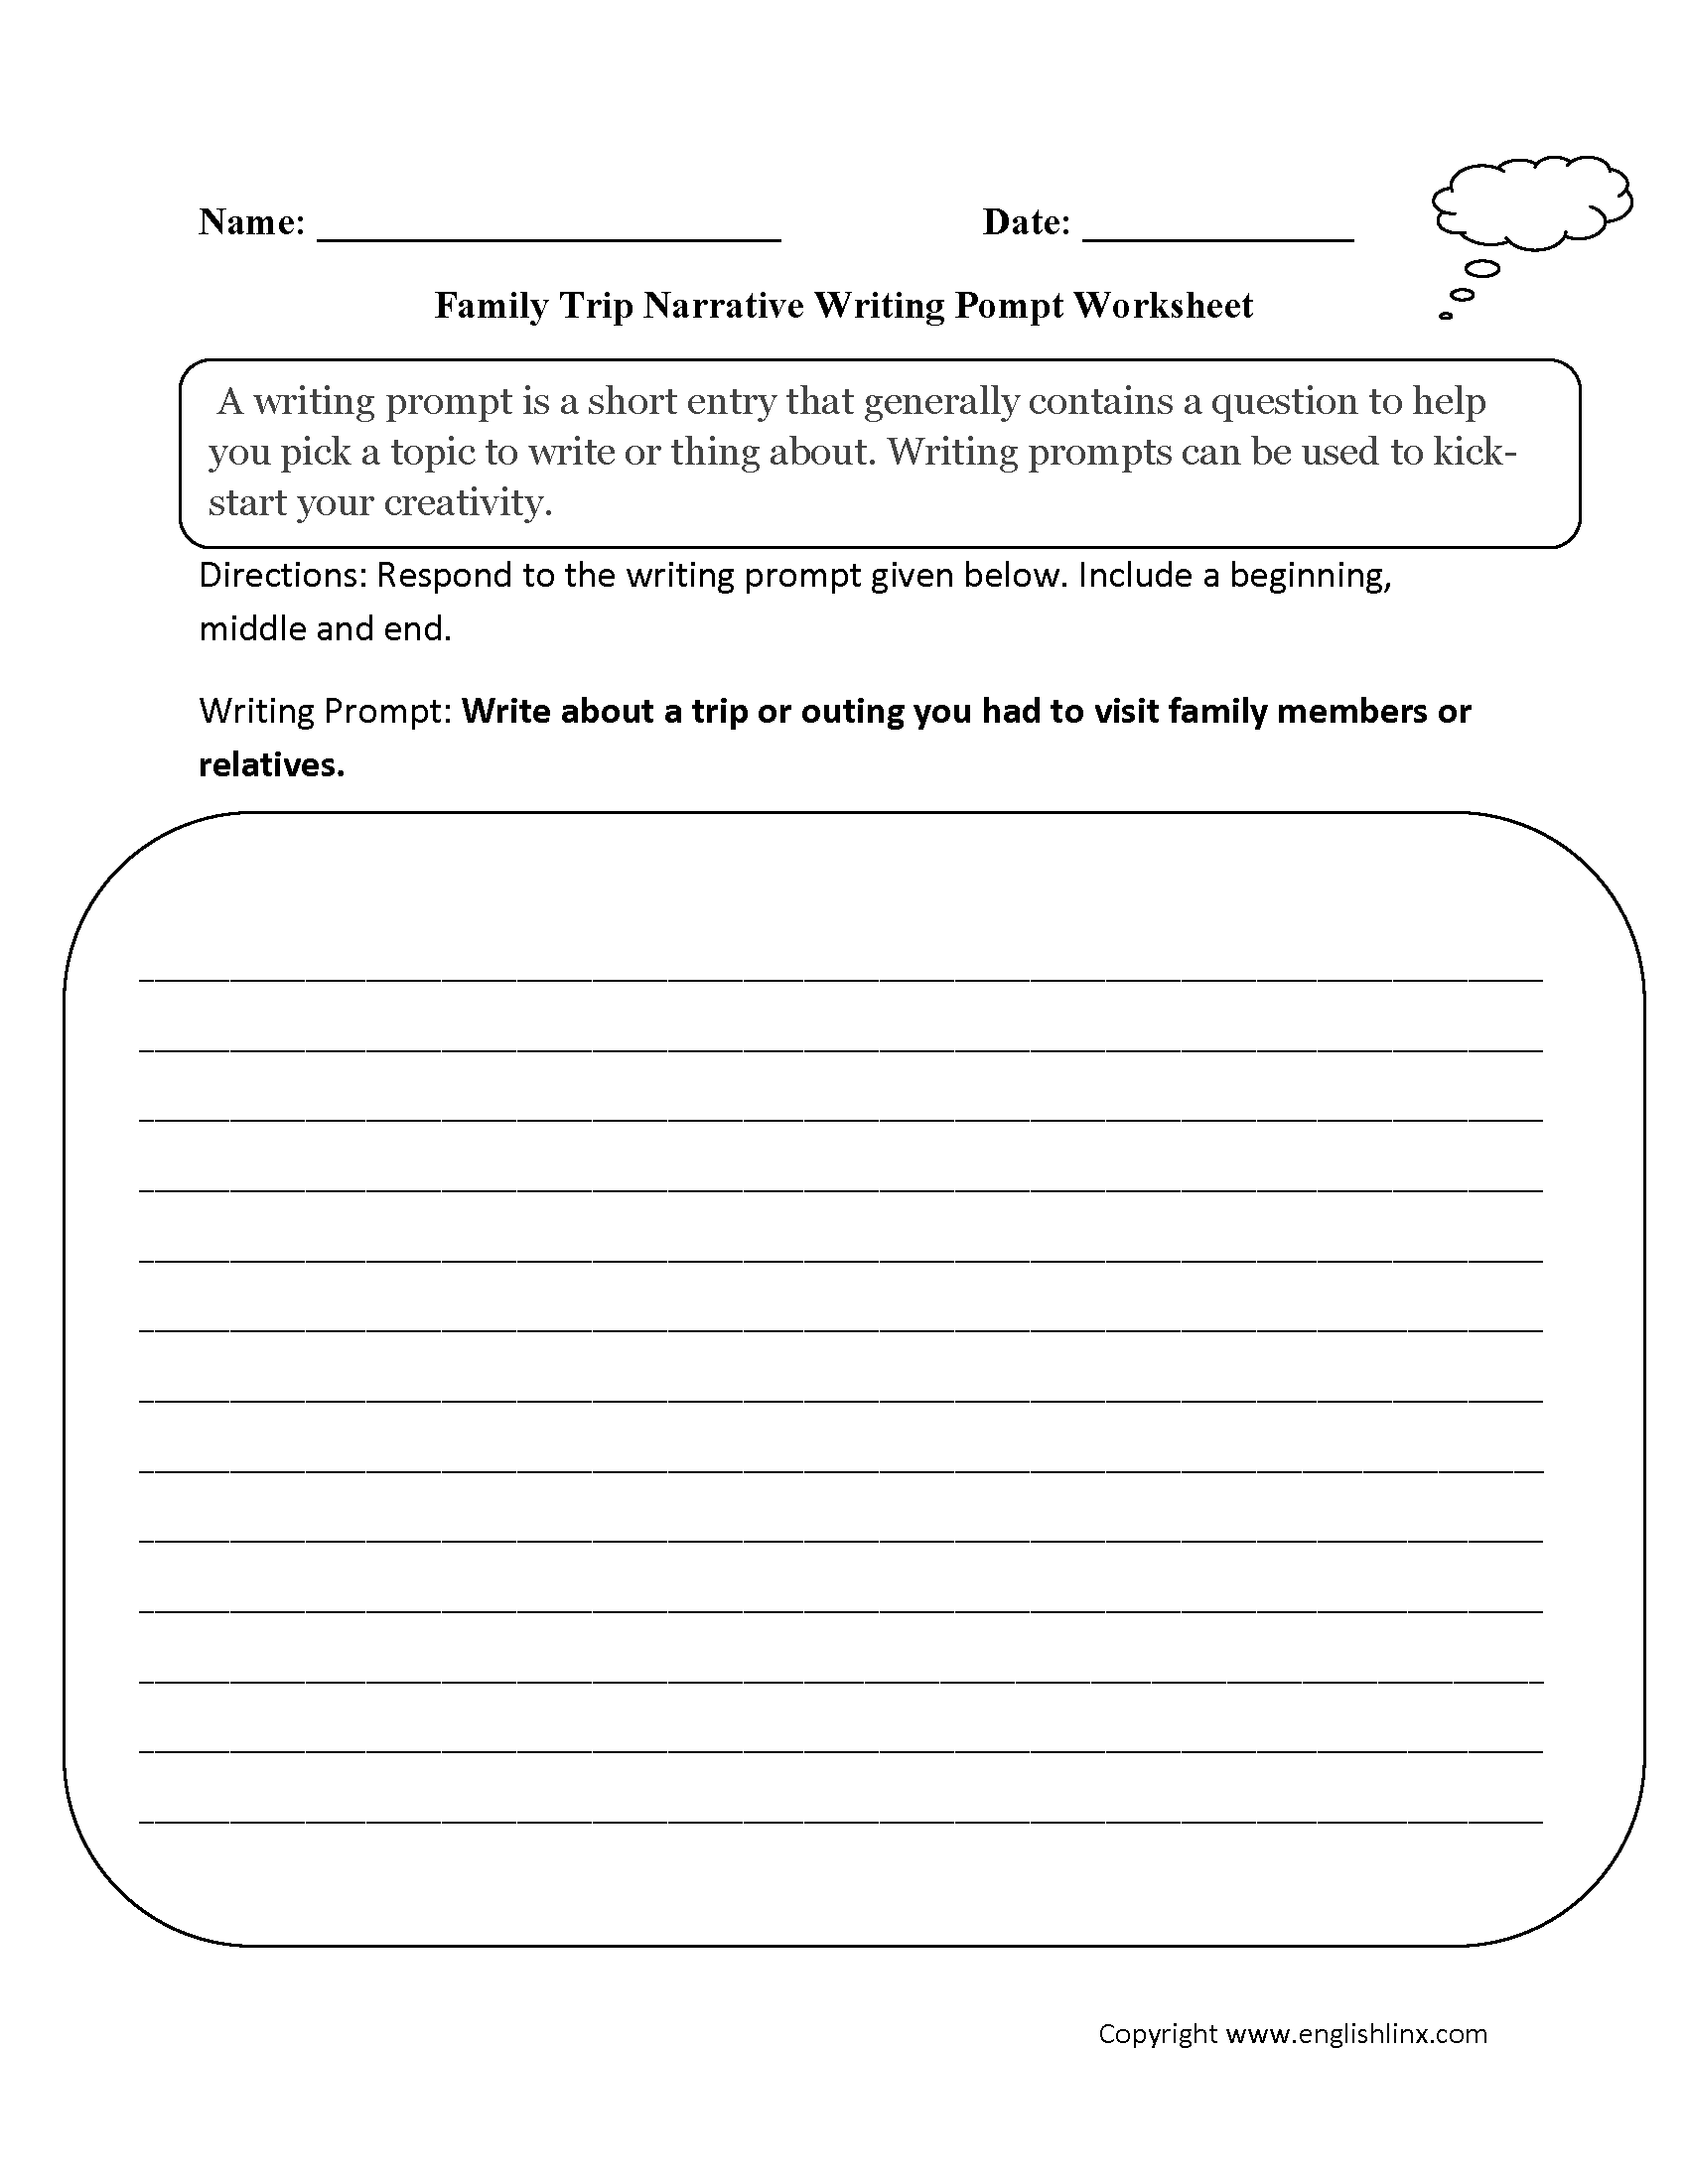 Englishlinx.com | Writing Prompts Worksheets